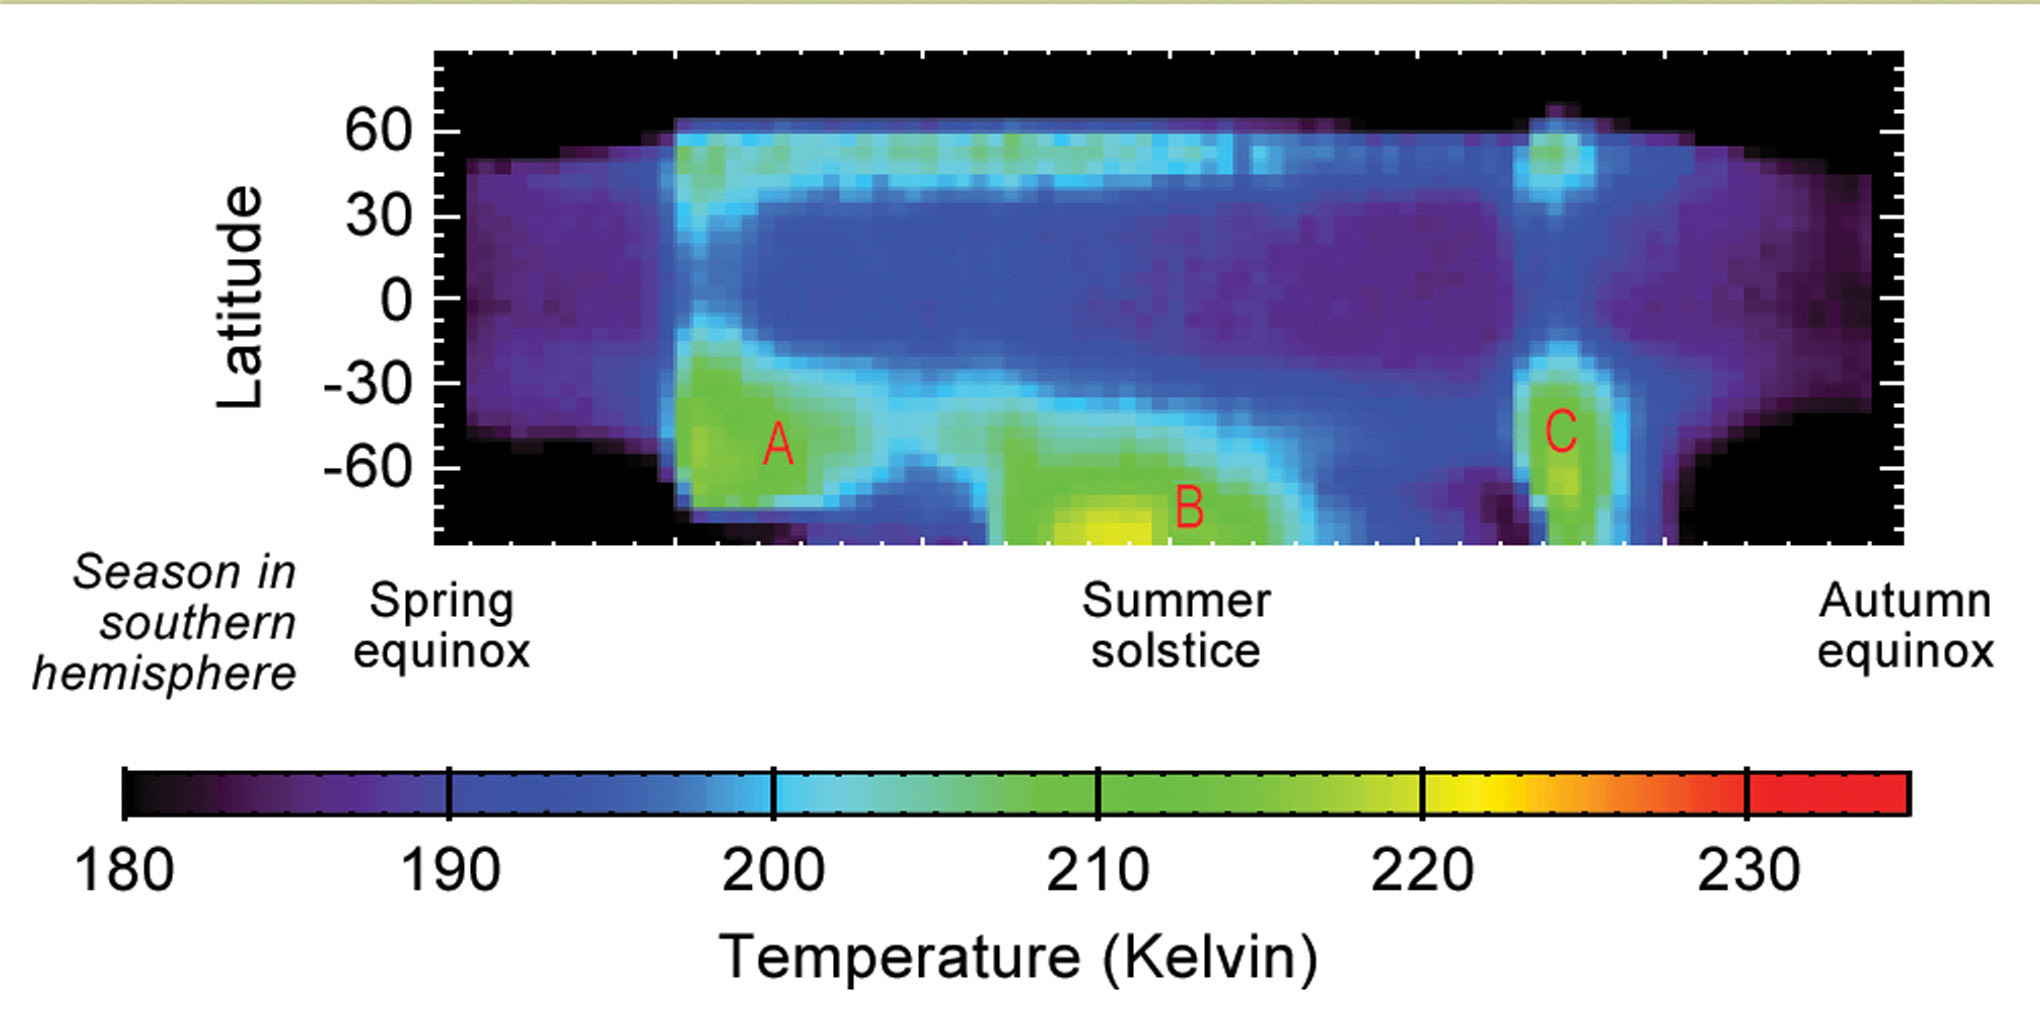 This graphic shows Martian atmospheric temperature data related to seasonal patterns in occurrence of large regional dust storms. The data shown here were collected by the Mars Climate Sounder instrument on NASA's Mars Reconnaissance Orbiter.